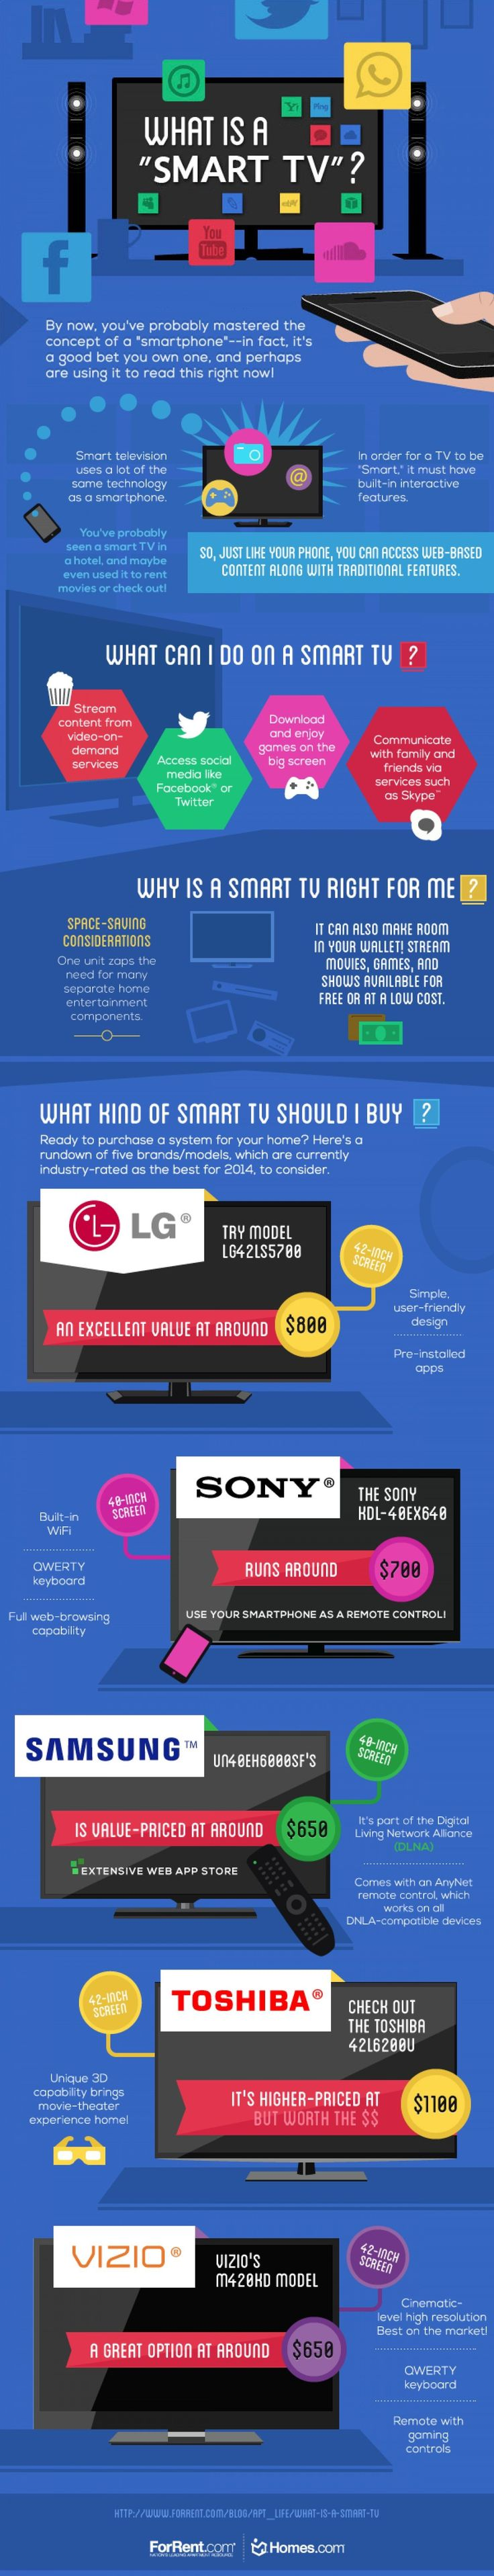 """What Is A """"Smart TV""""?   #Infographic #SmartTV #Technology"""